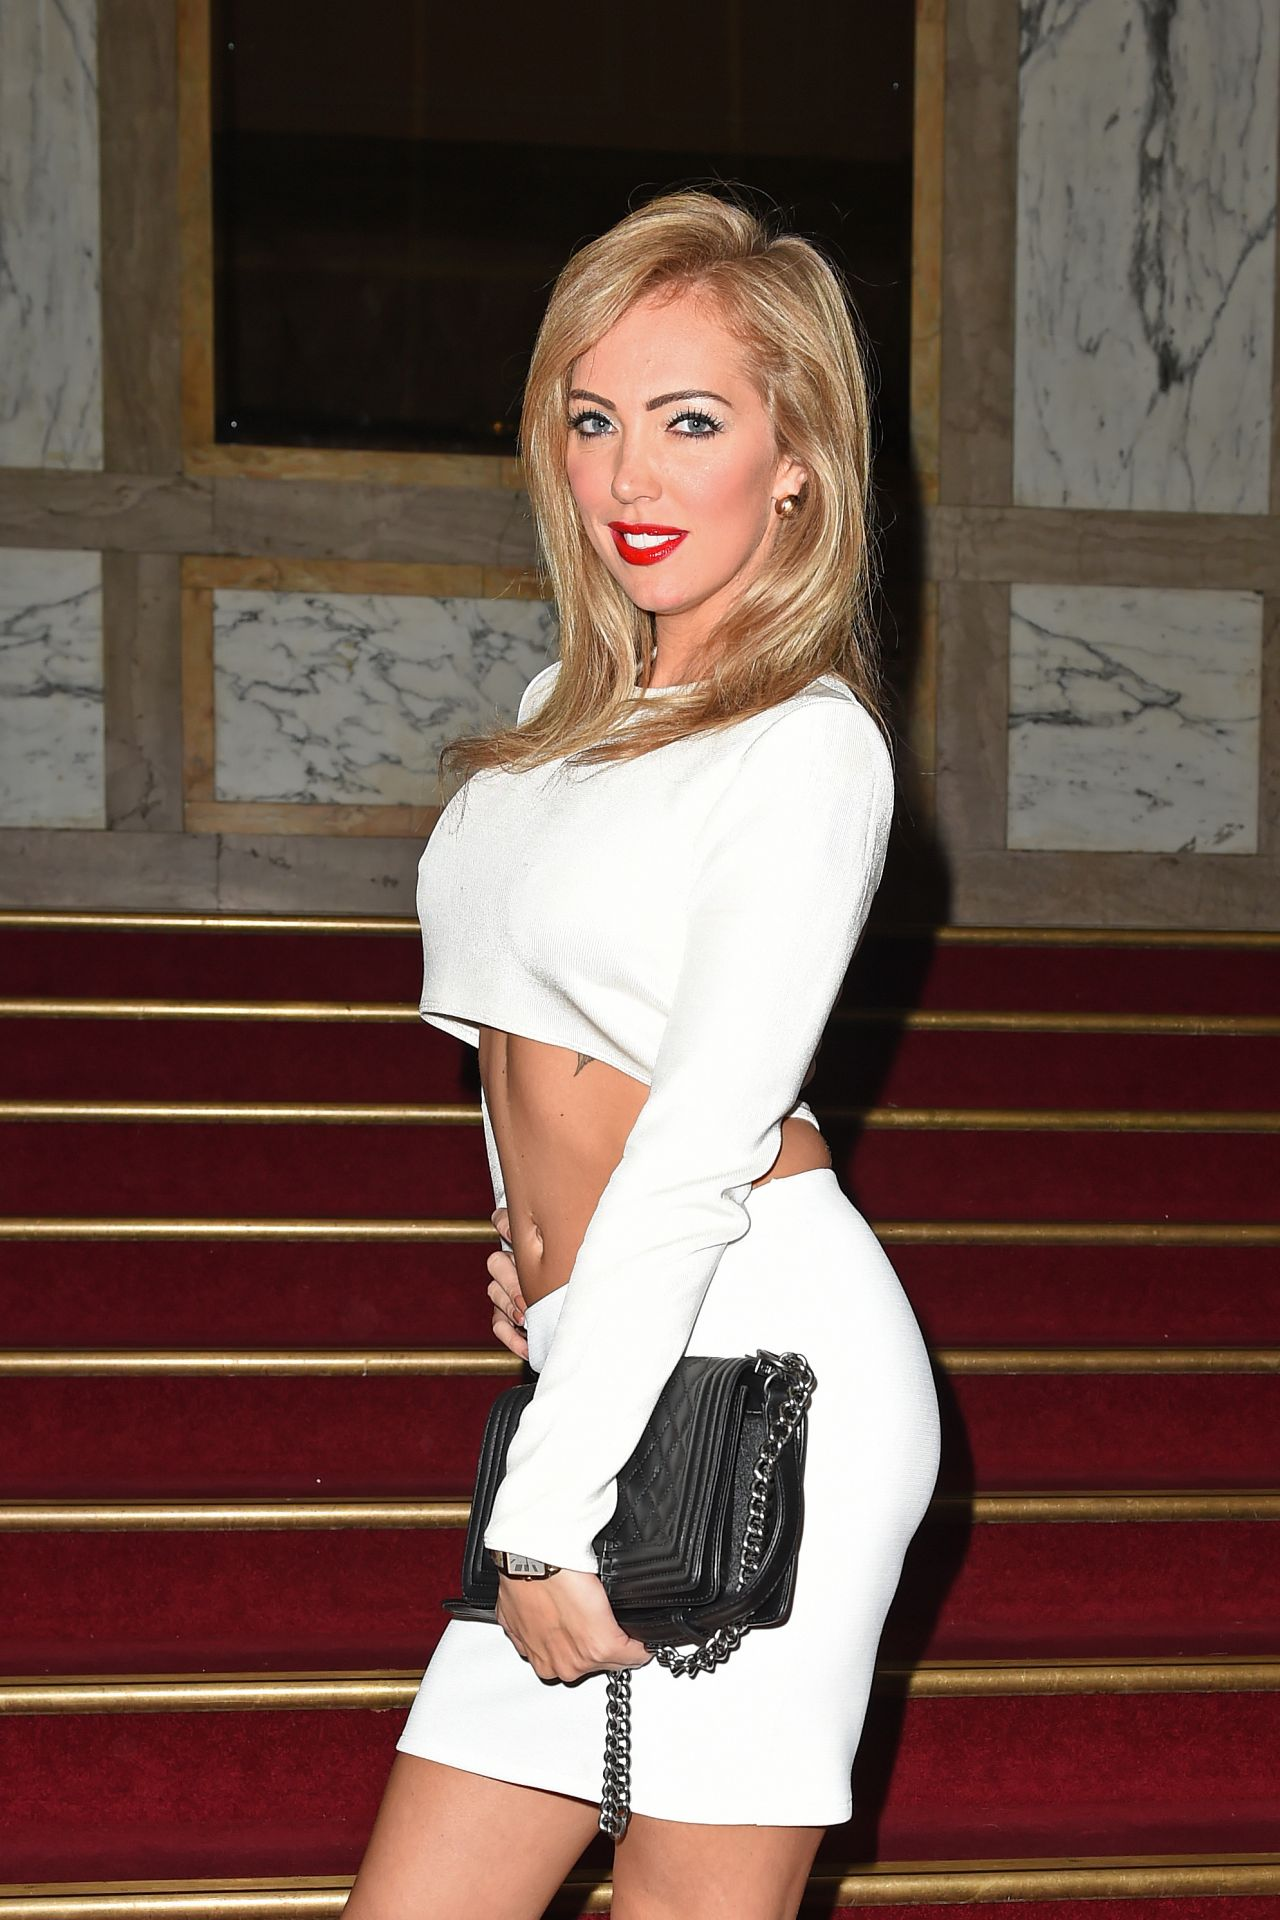 Aisleyne Horgan-Wallace naked (66 photo) Cleavage, Facebook, braless